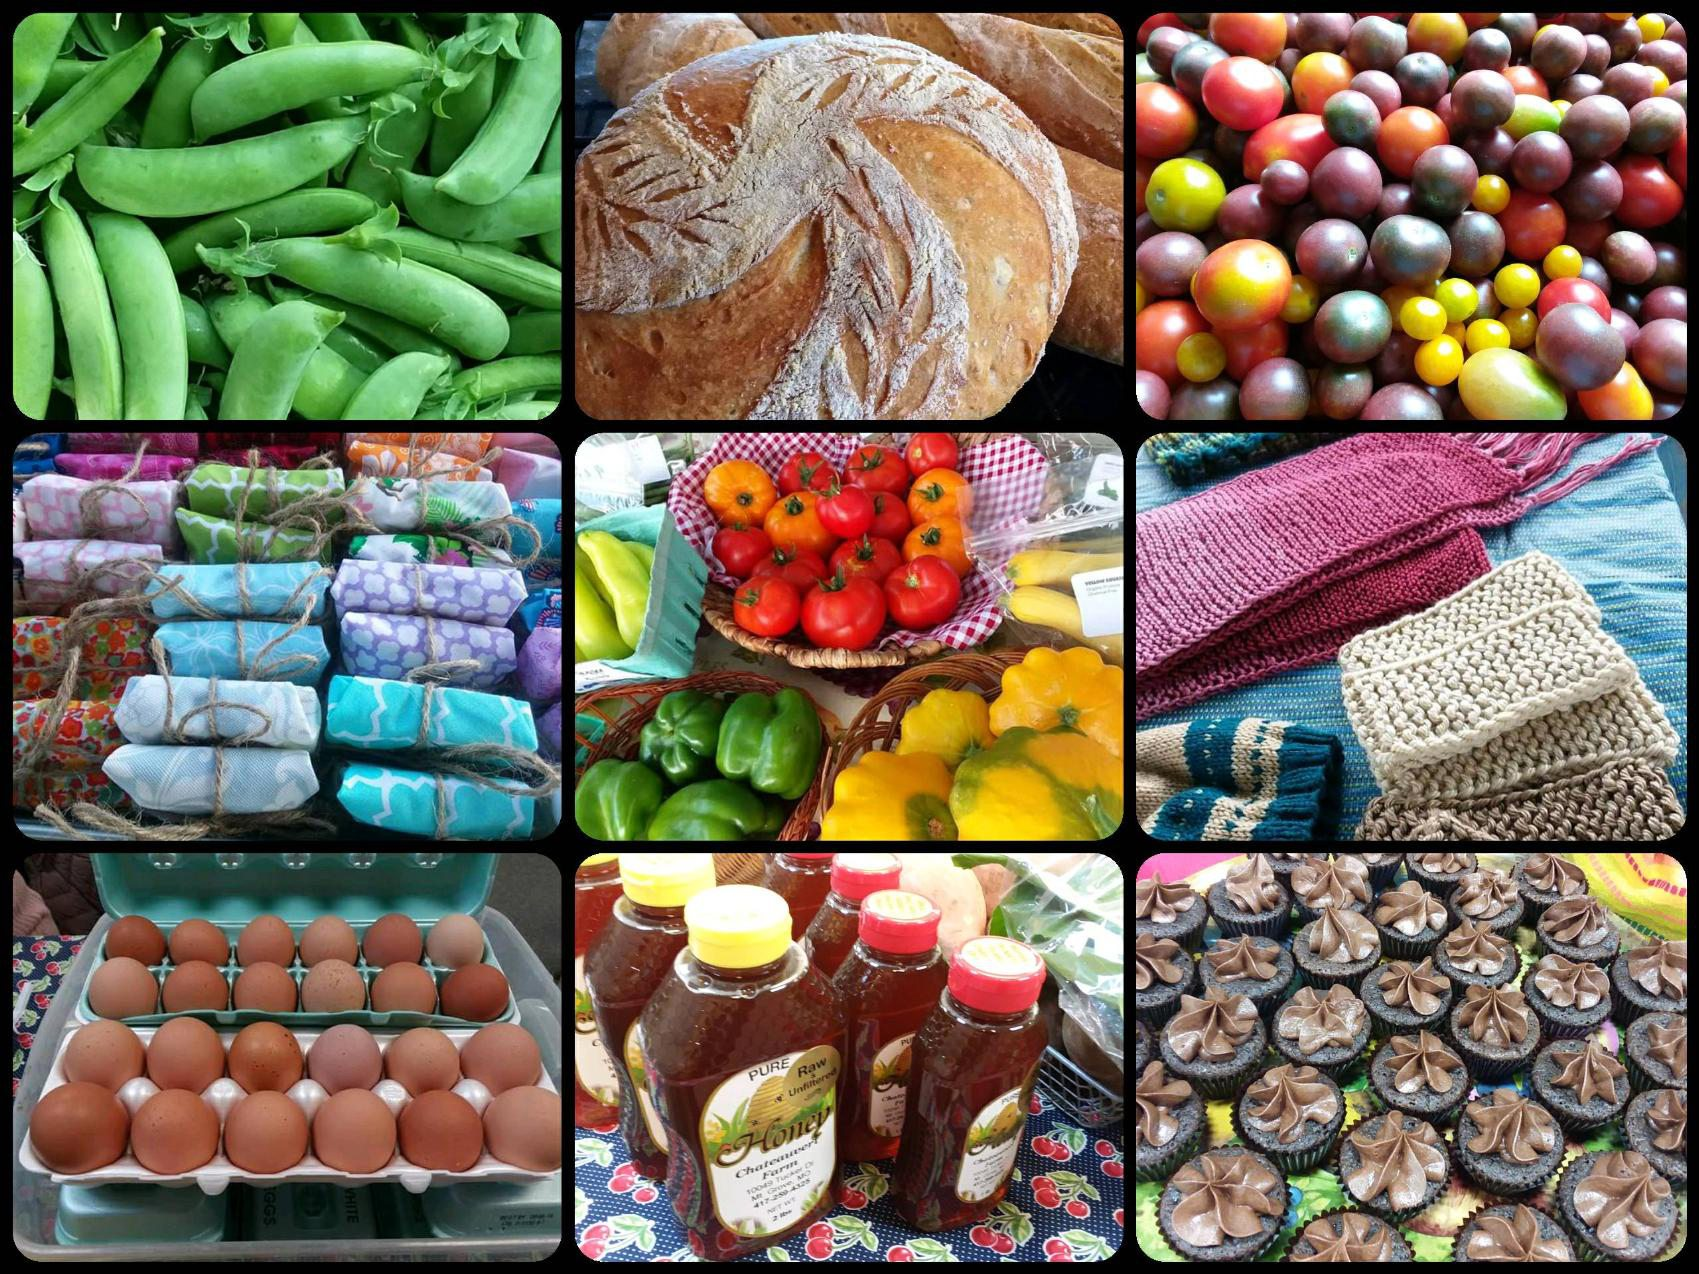 Southwest Missouri Farmers Market